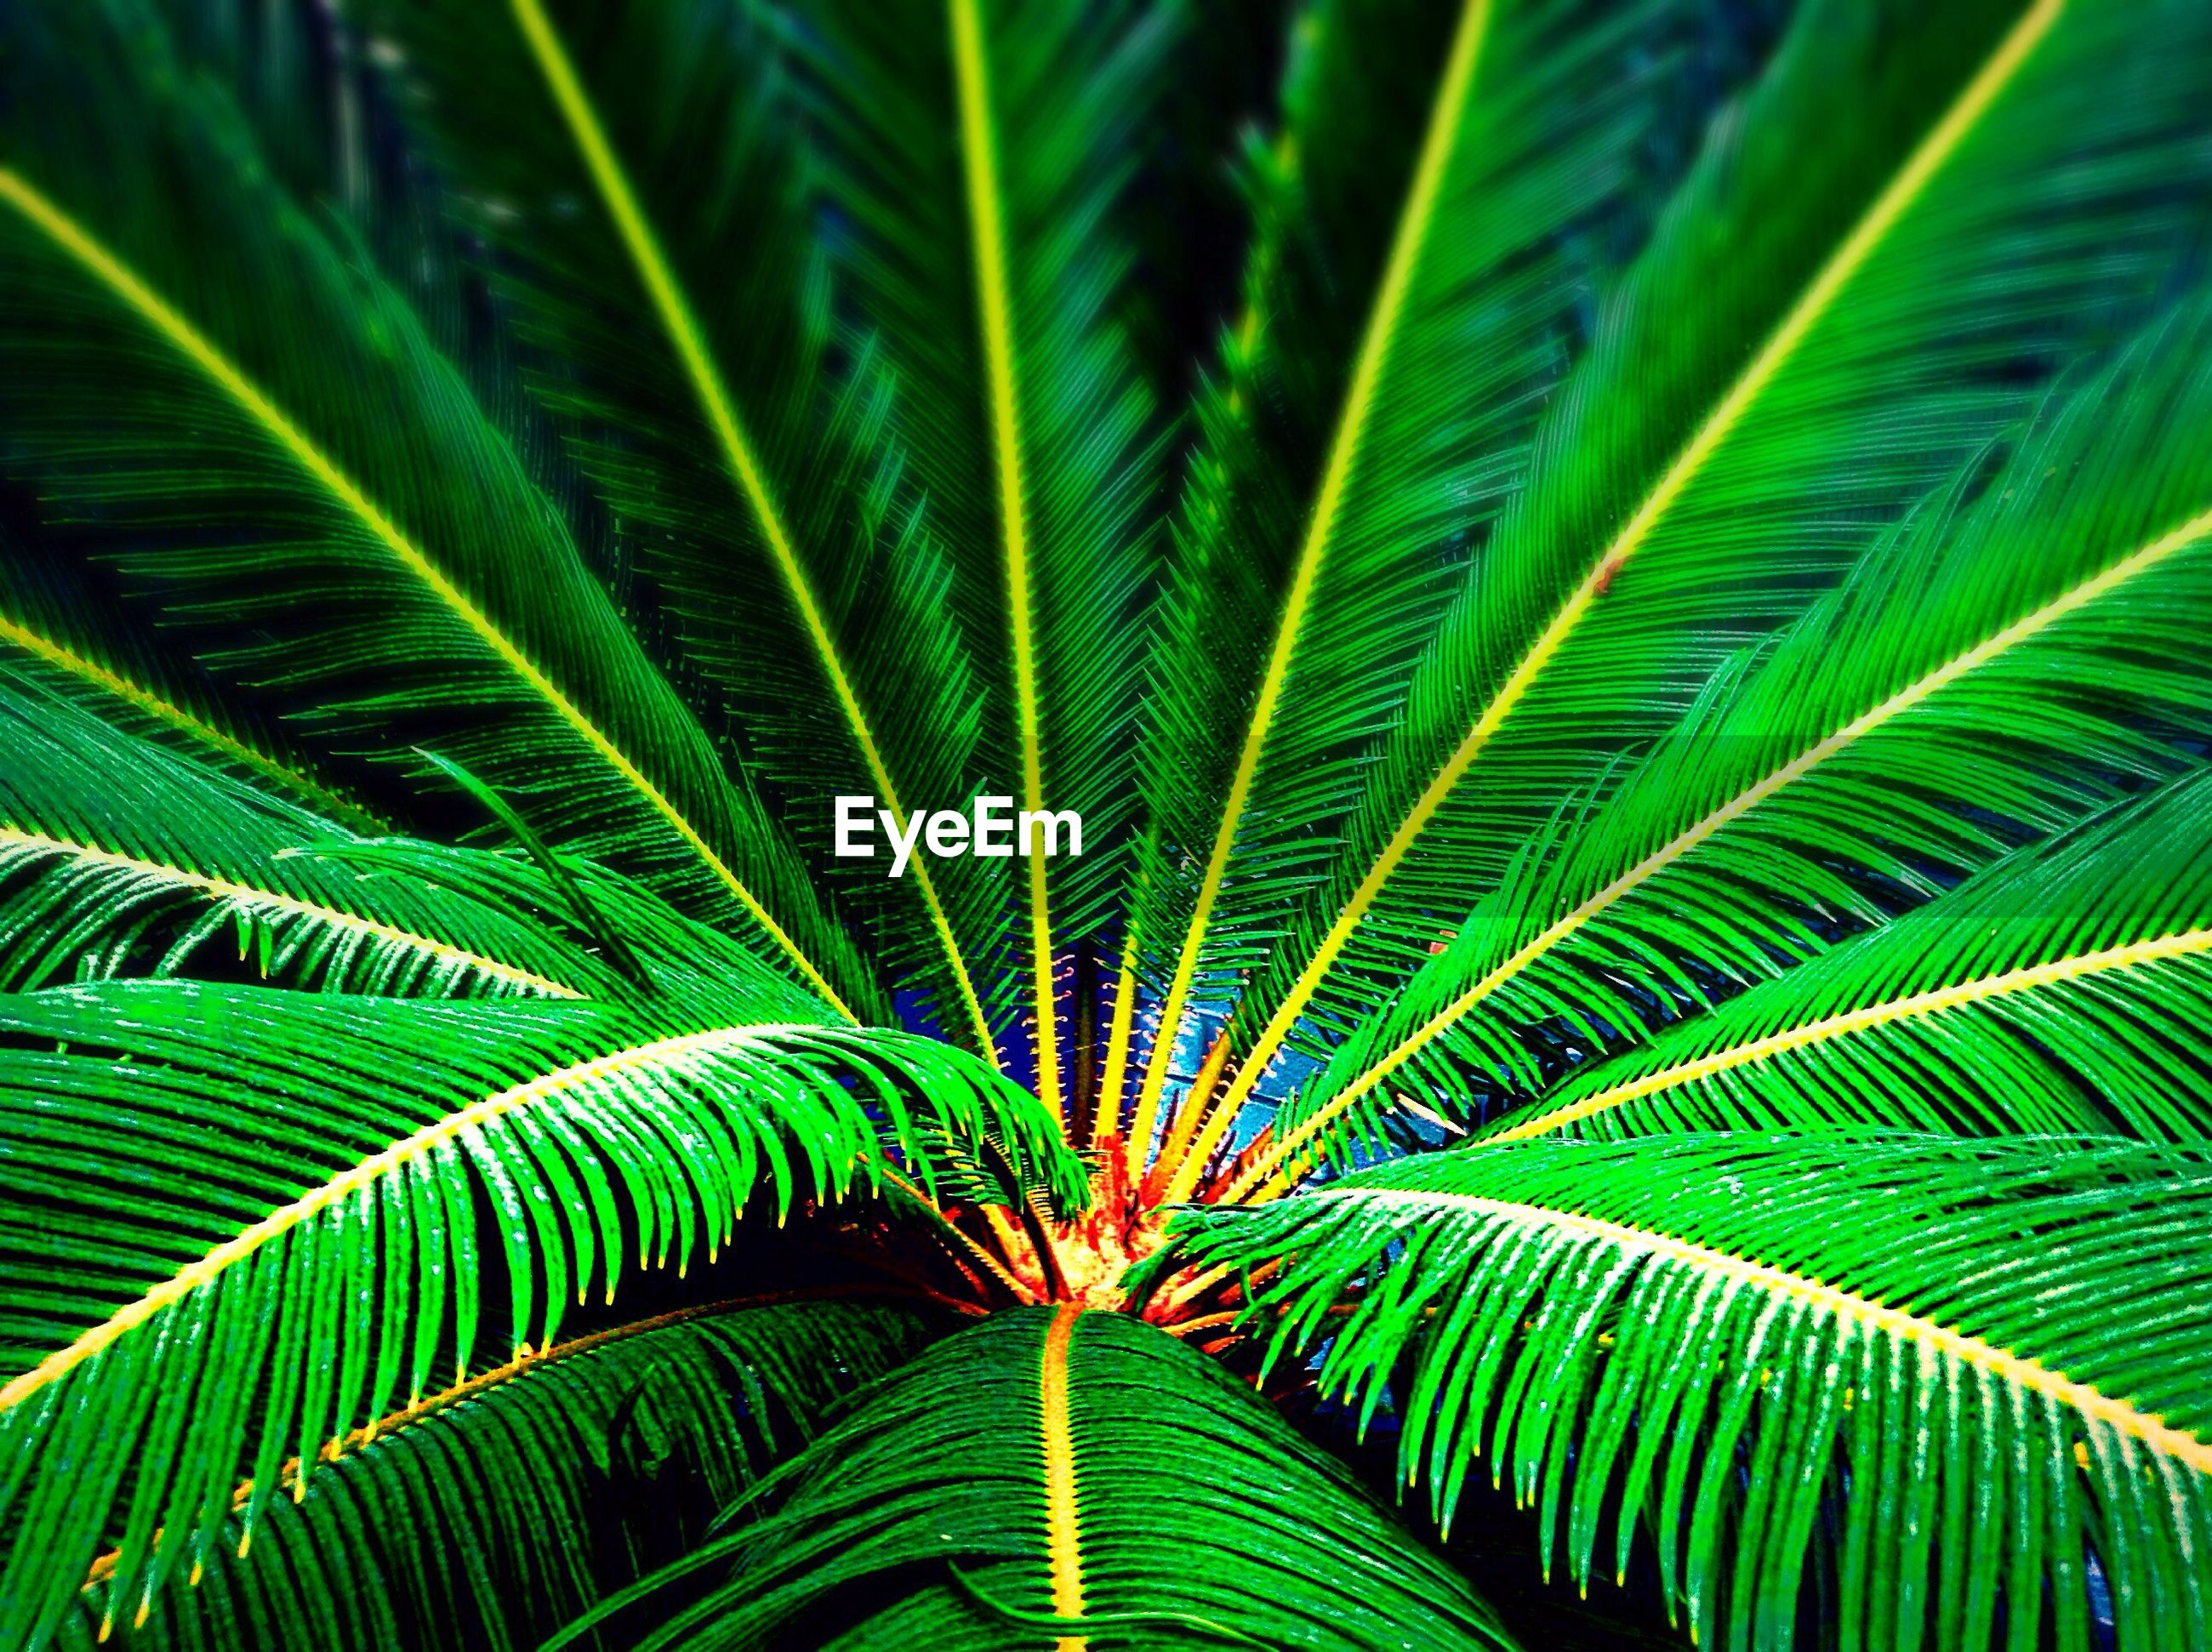 green color, leaf, growth, full frame, plant, nature, backgrounds, palm tree, fern, beauty in nature, natural pattern, close-up, green, palm leaf, lush foliage, outdoors, no people, day, leaves, tranquility, focus on foreground, botany, growing, selective focus, detail